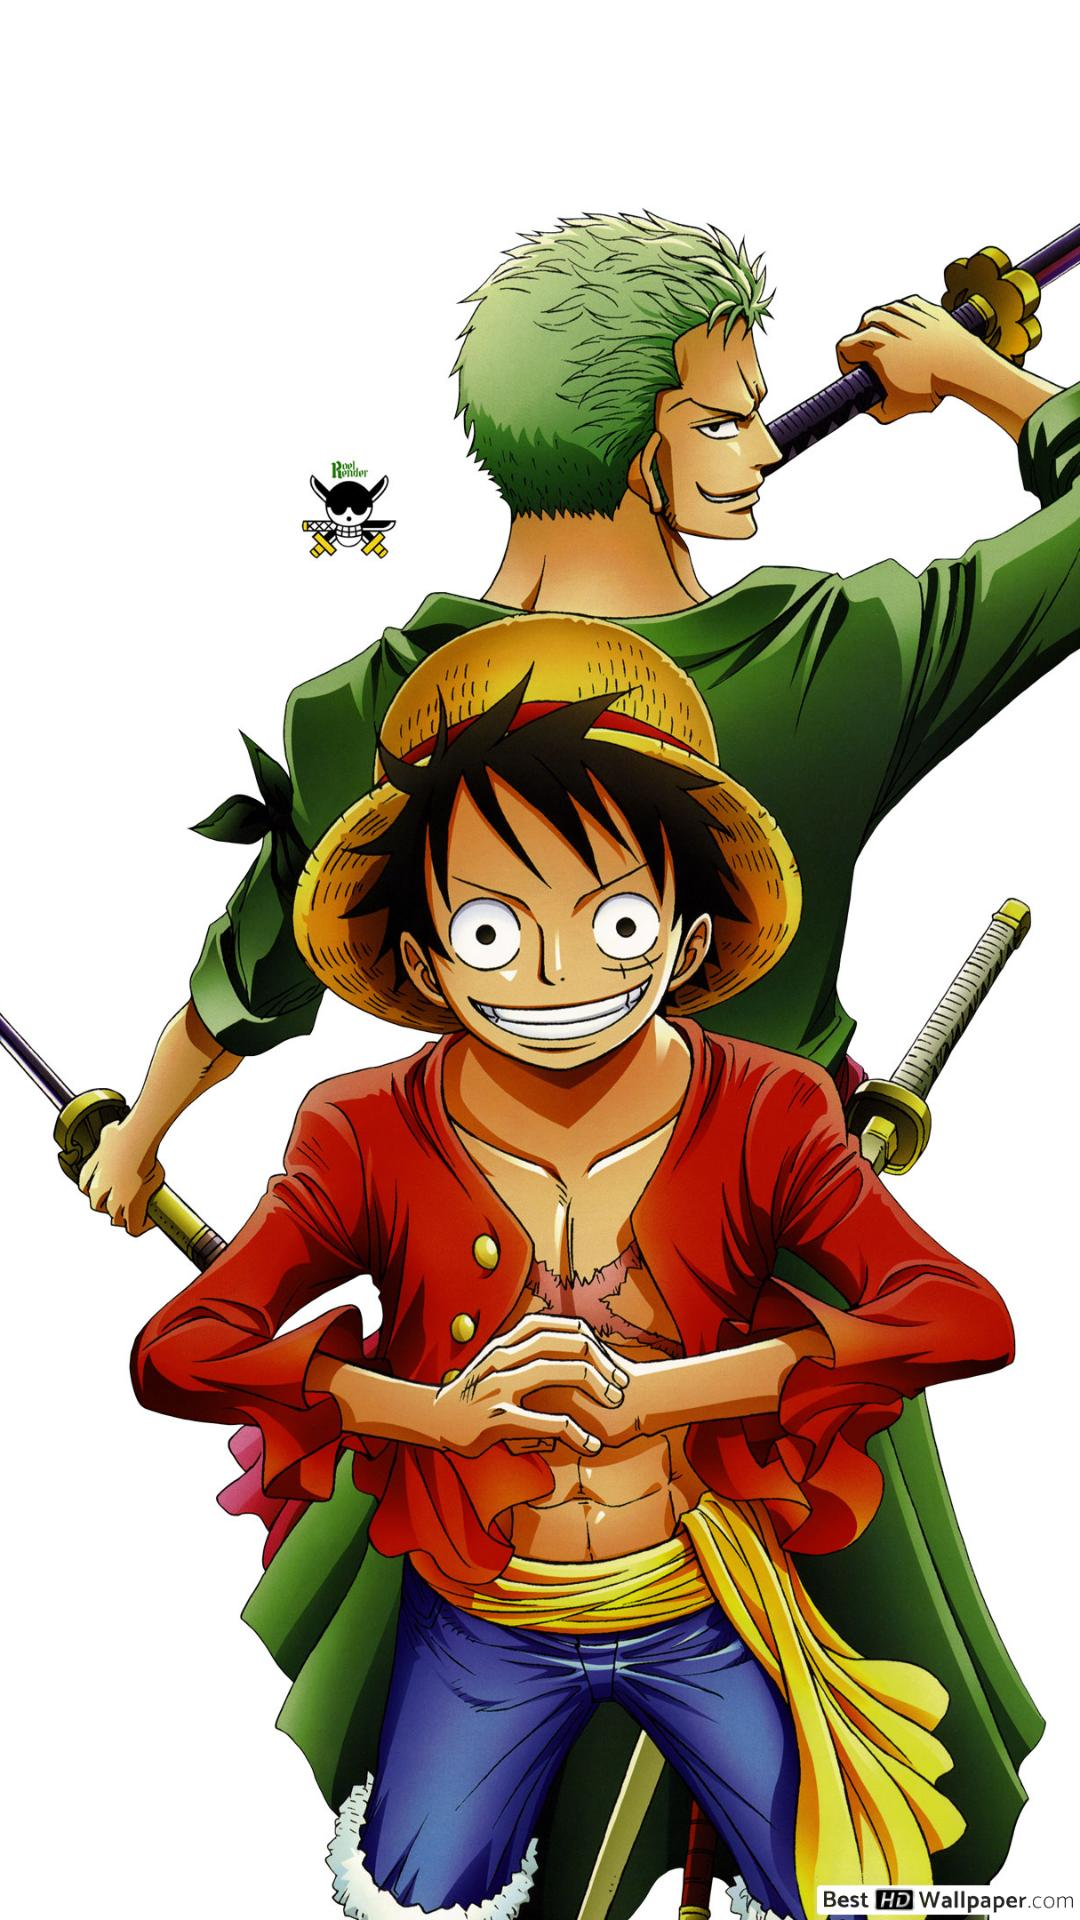 Your iphone's wallpaper doesn't have to be a boring still image. One Piece Luffy iPhone Wallpapers - Top Free One Piece ...